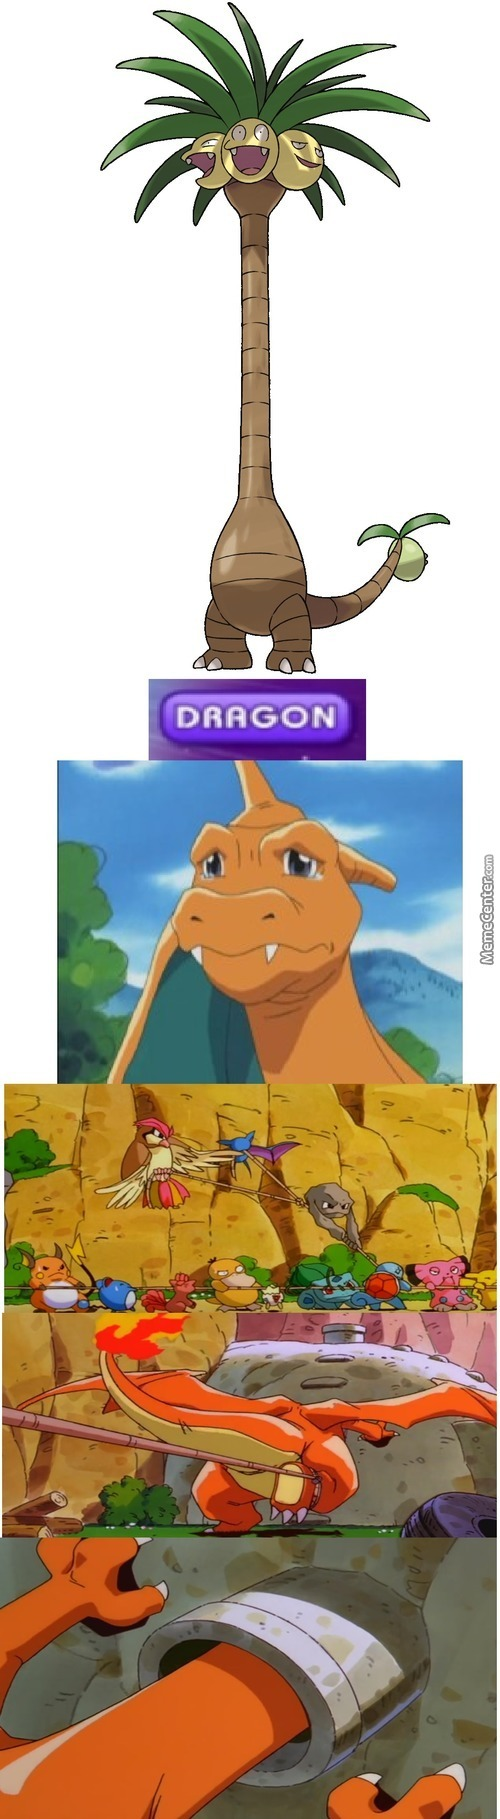 How To Become A Dragon